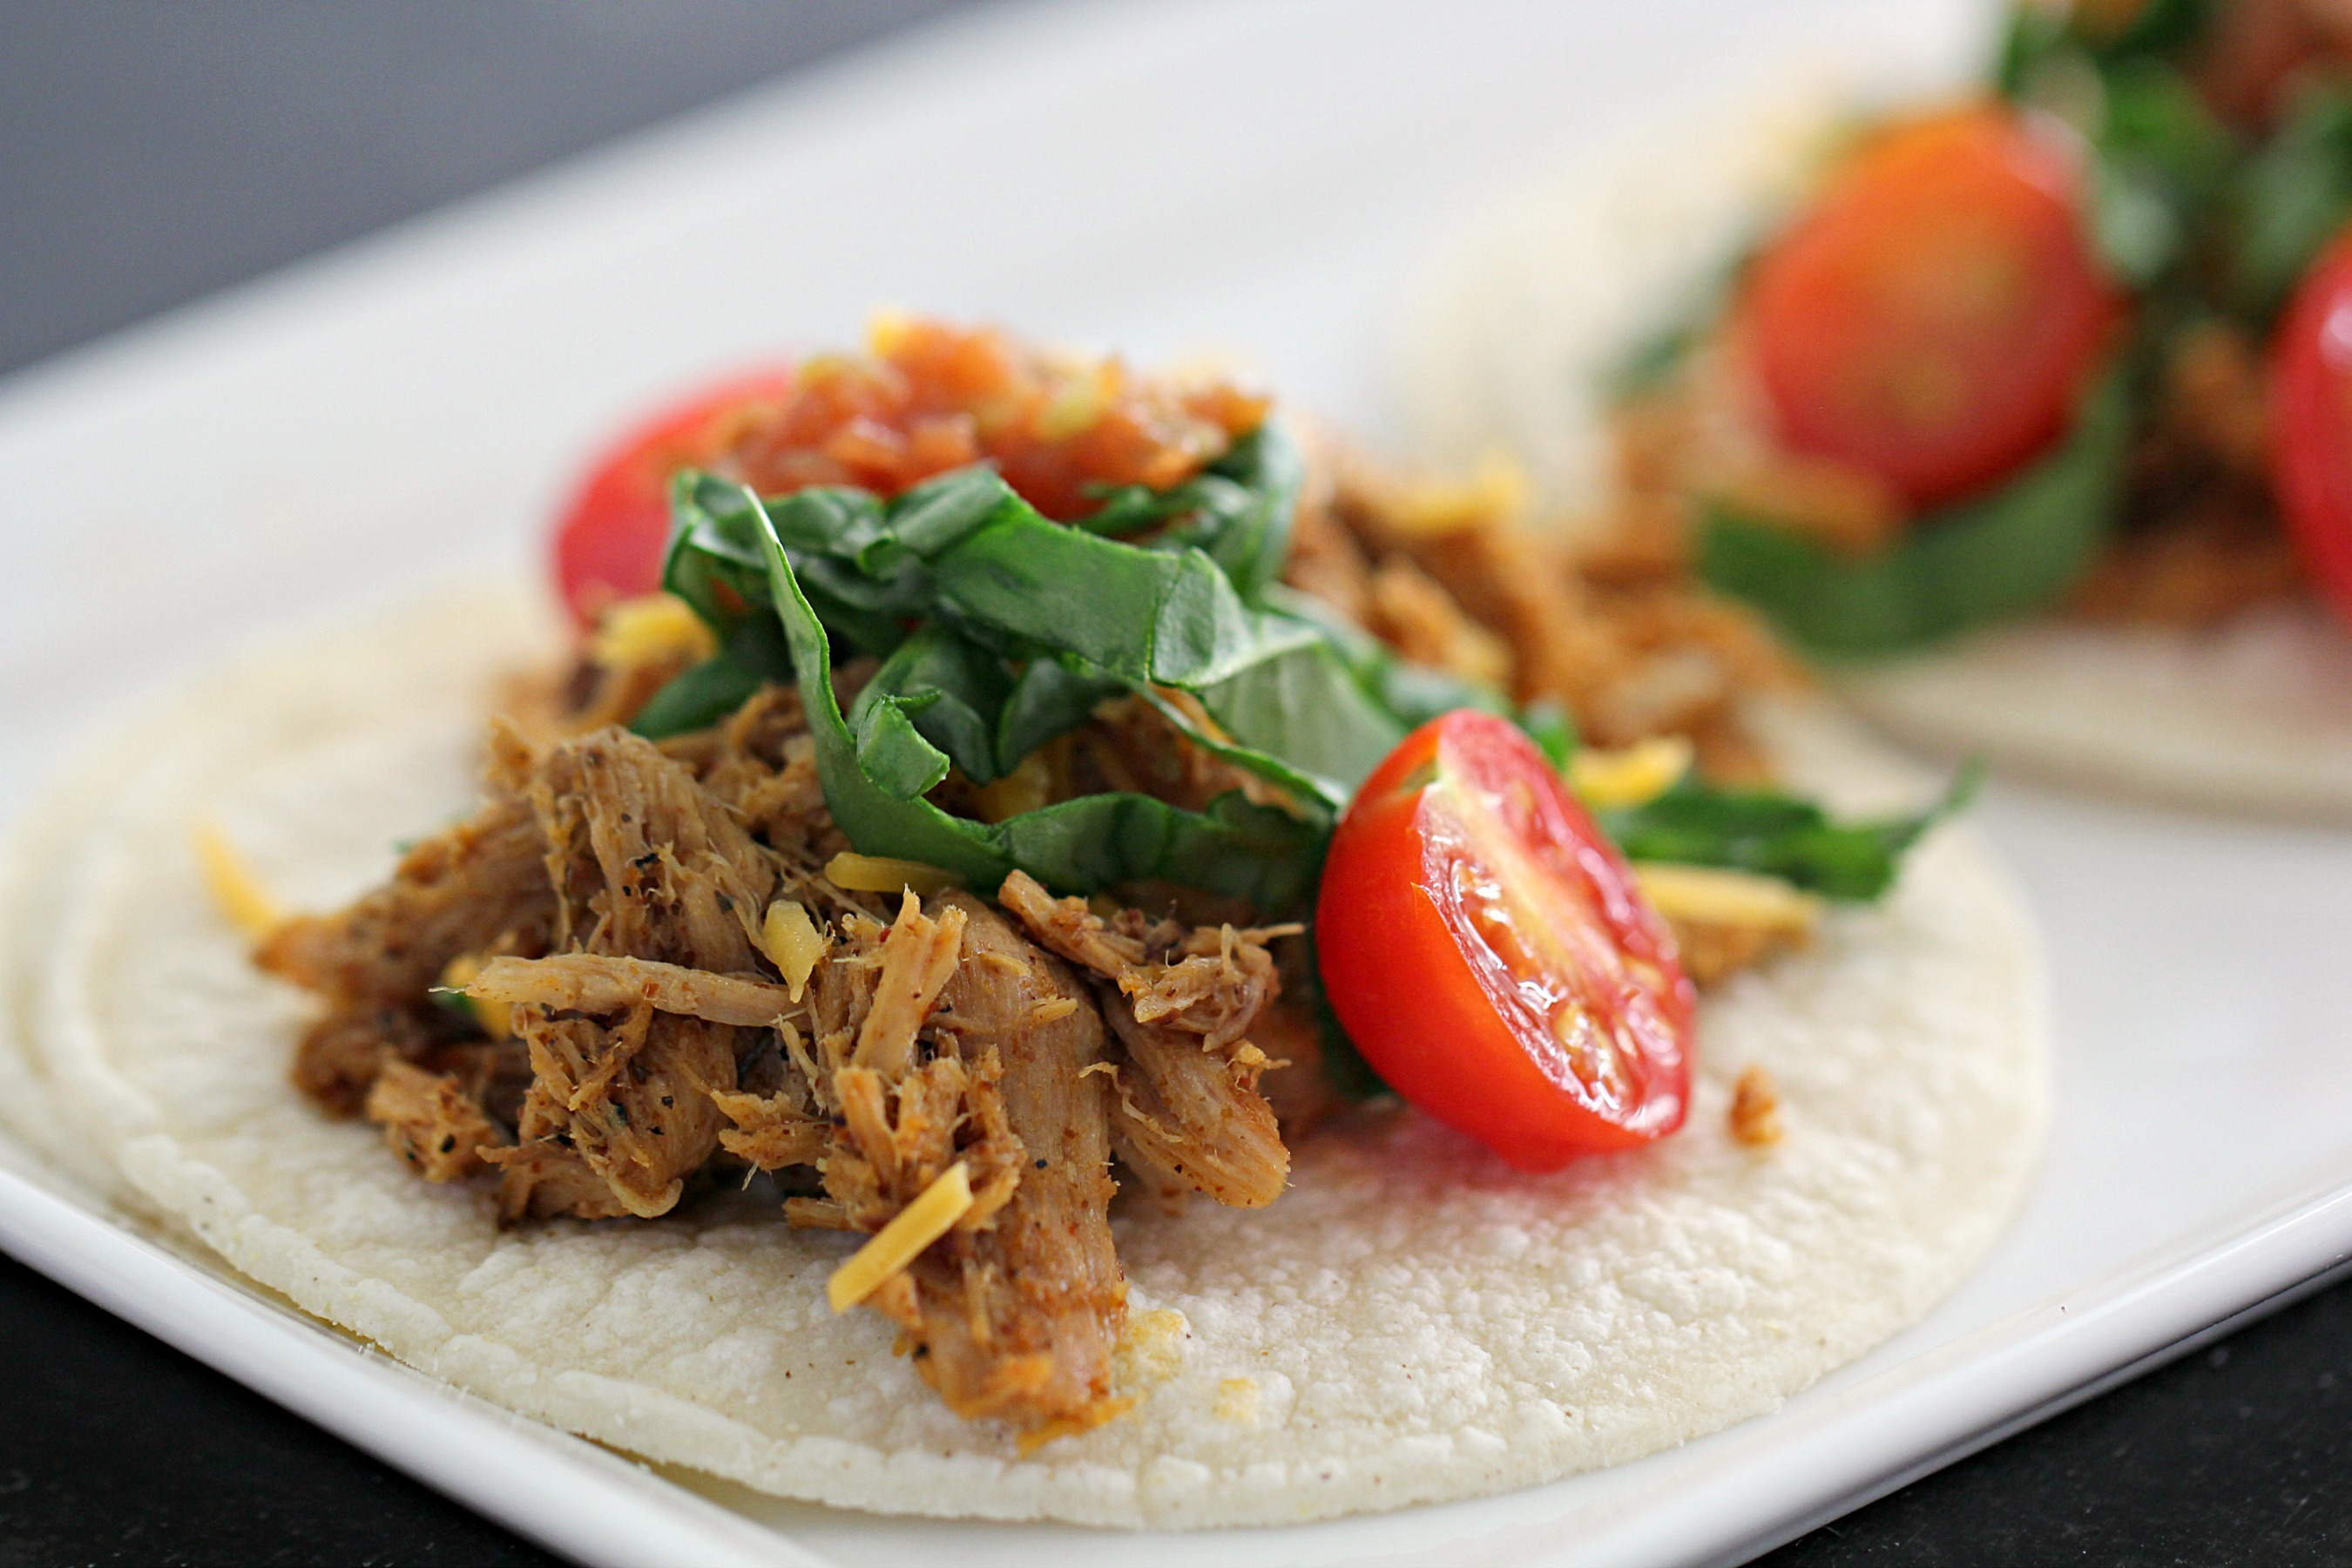 Shredded Mexican Chicken on tortilla topped with Cheese and Veggies